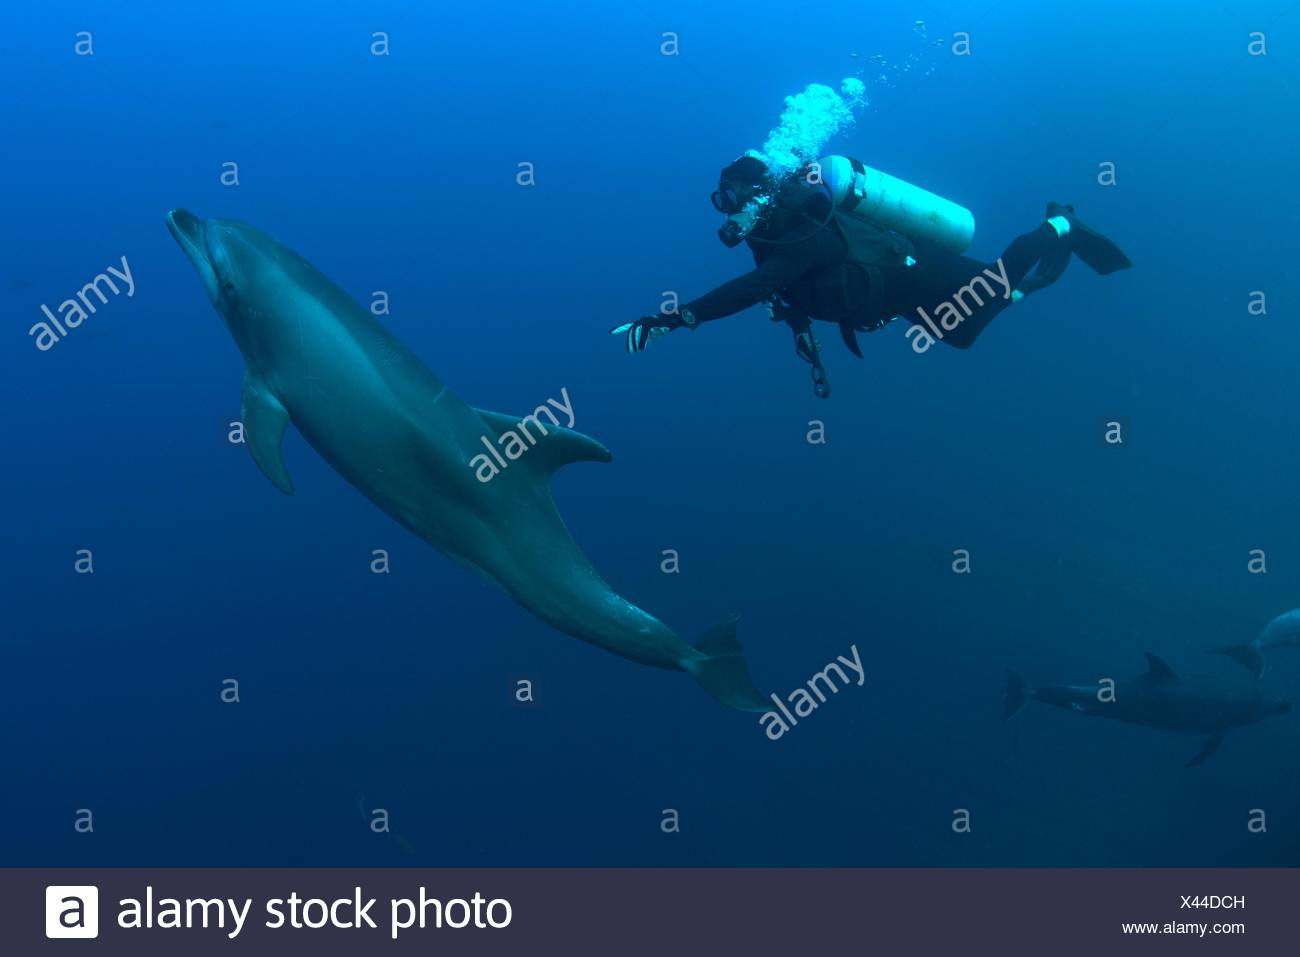 Underwater view of diver reaching for bottlenose dolphin, Revillagigedo Islands, Colima, Mexico - Stock Image